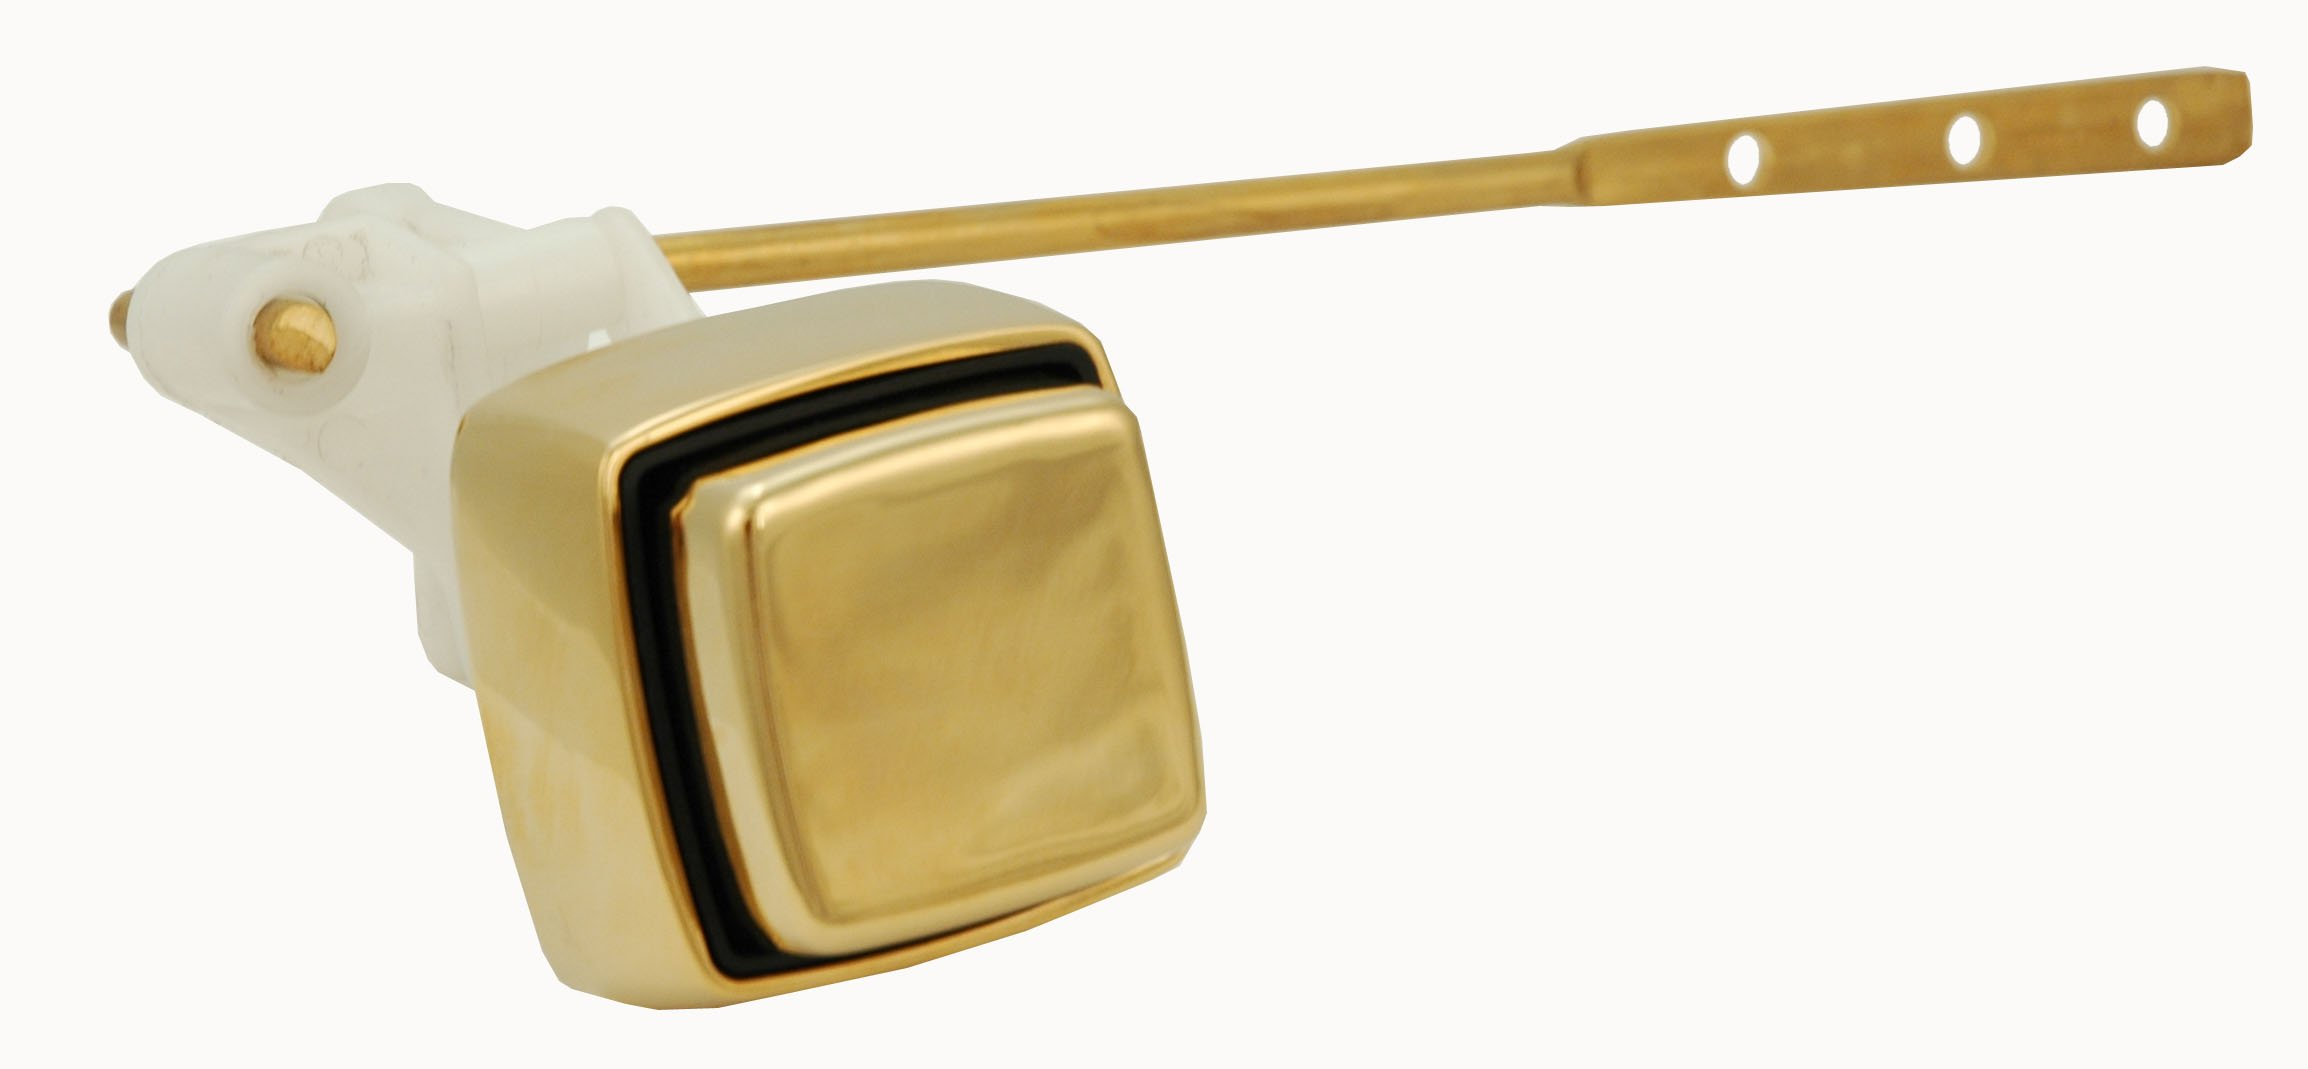 Tank Lever, Toilet Tank Lever - Push-button Type, Front Mount, Polish Brass Finish - By Plumb USA